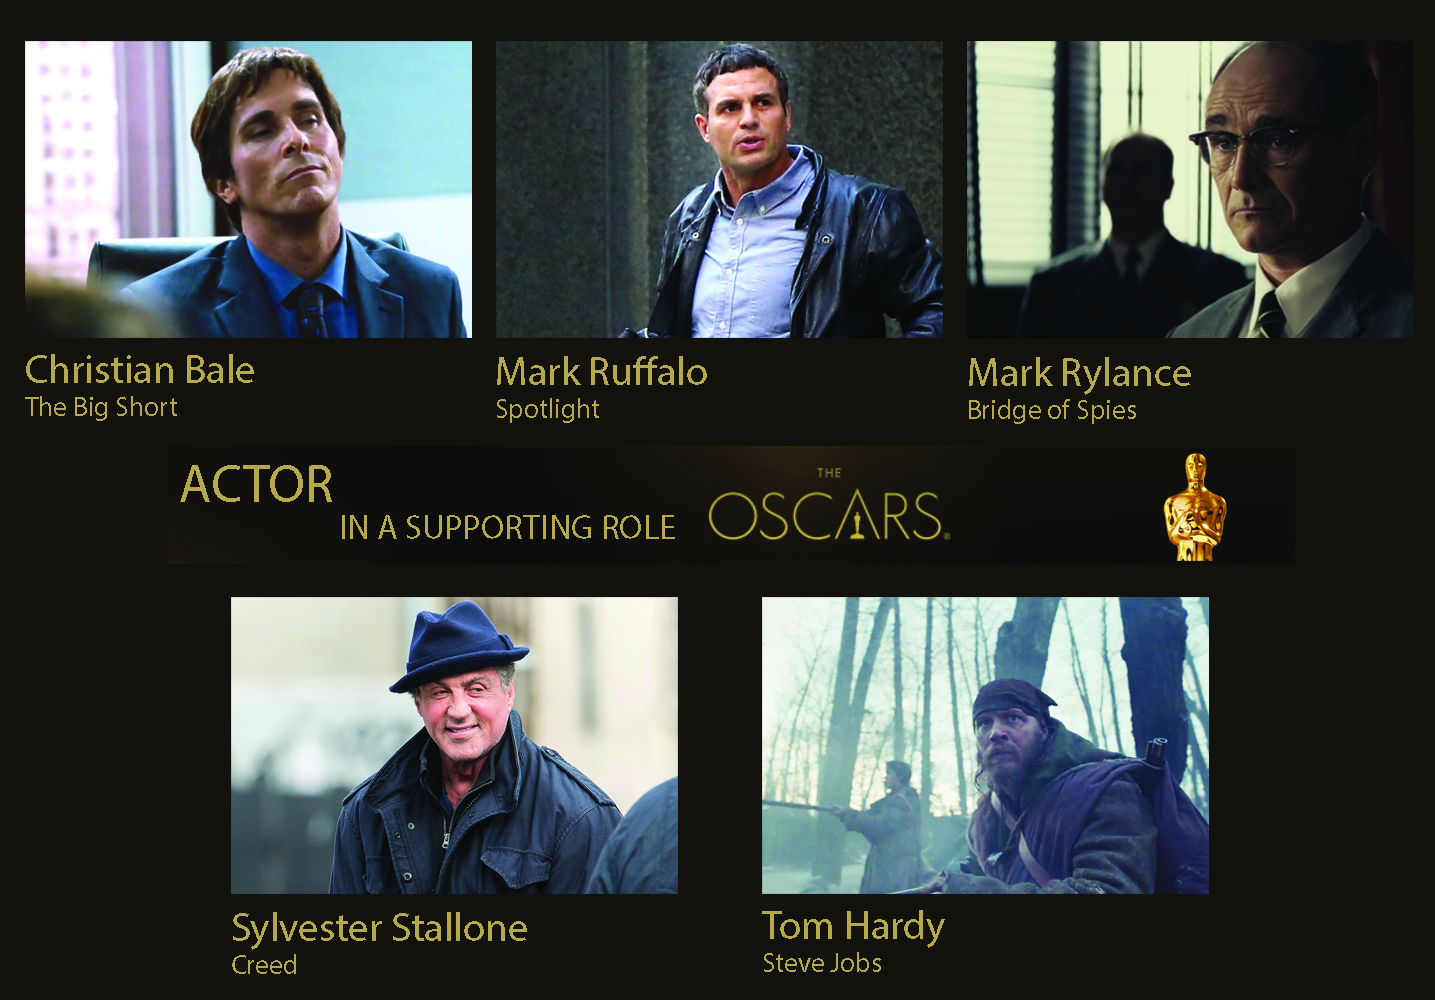 ACTOR IN SUPPORTING ROLE